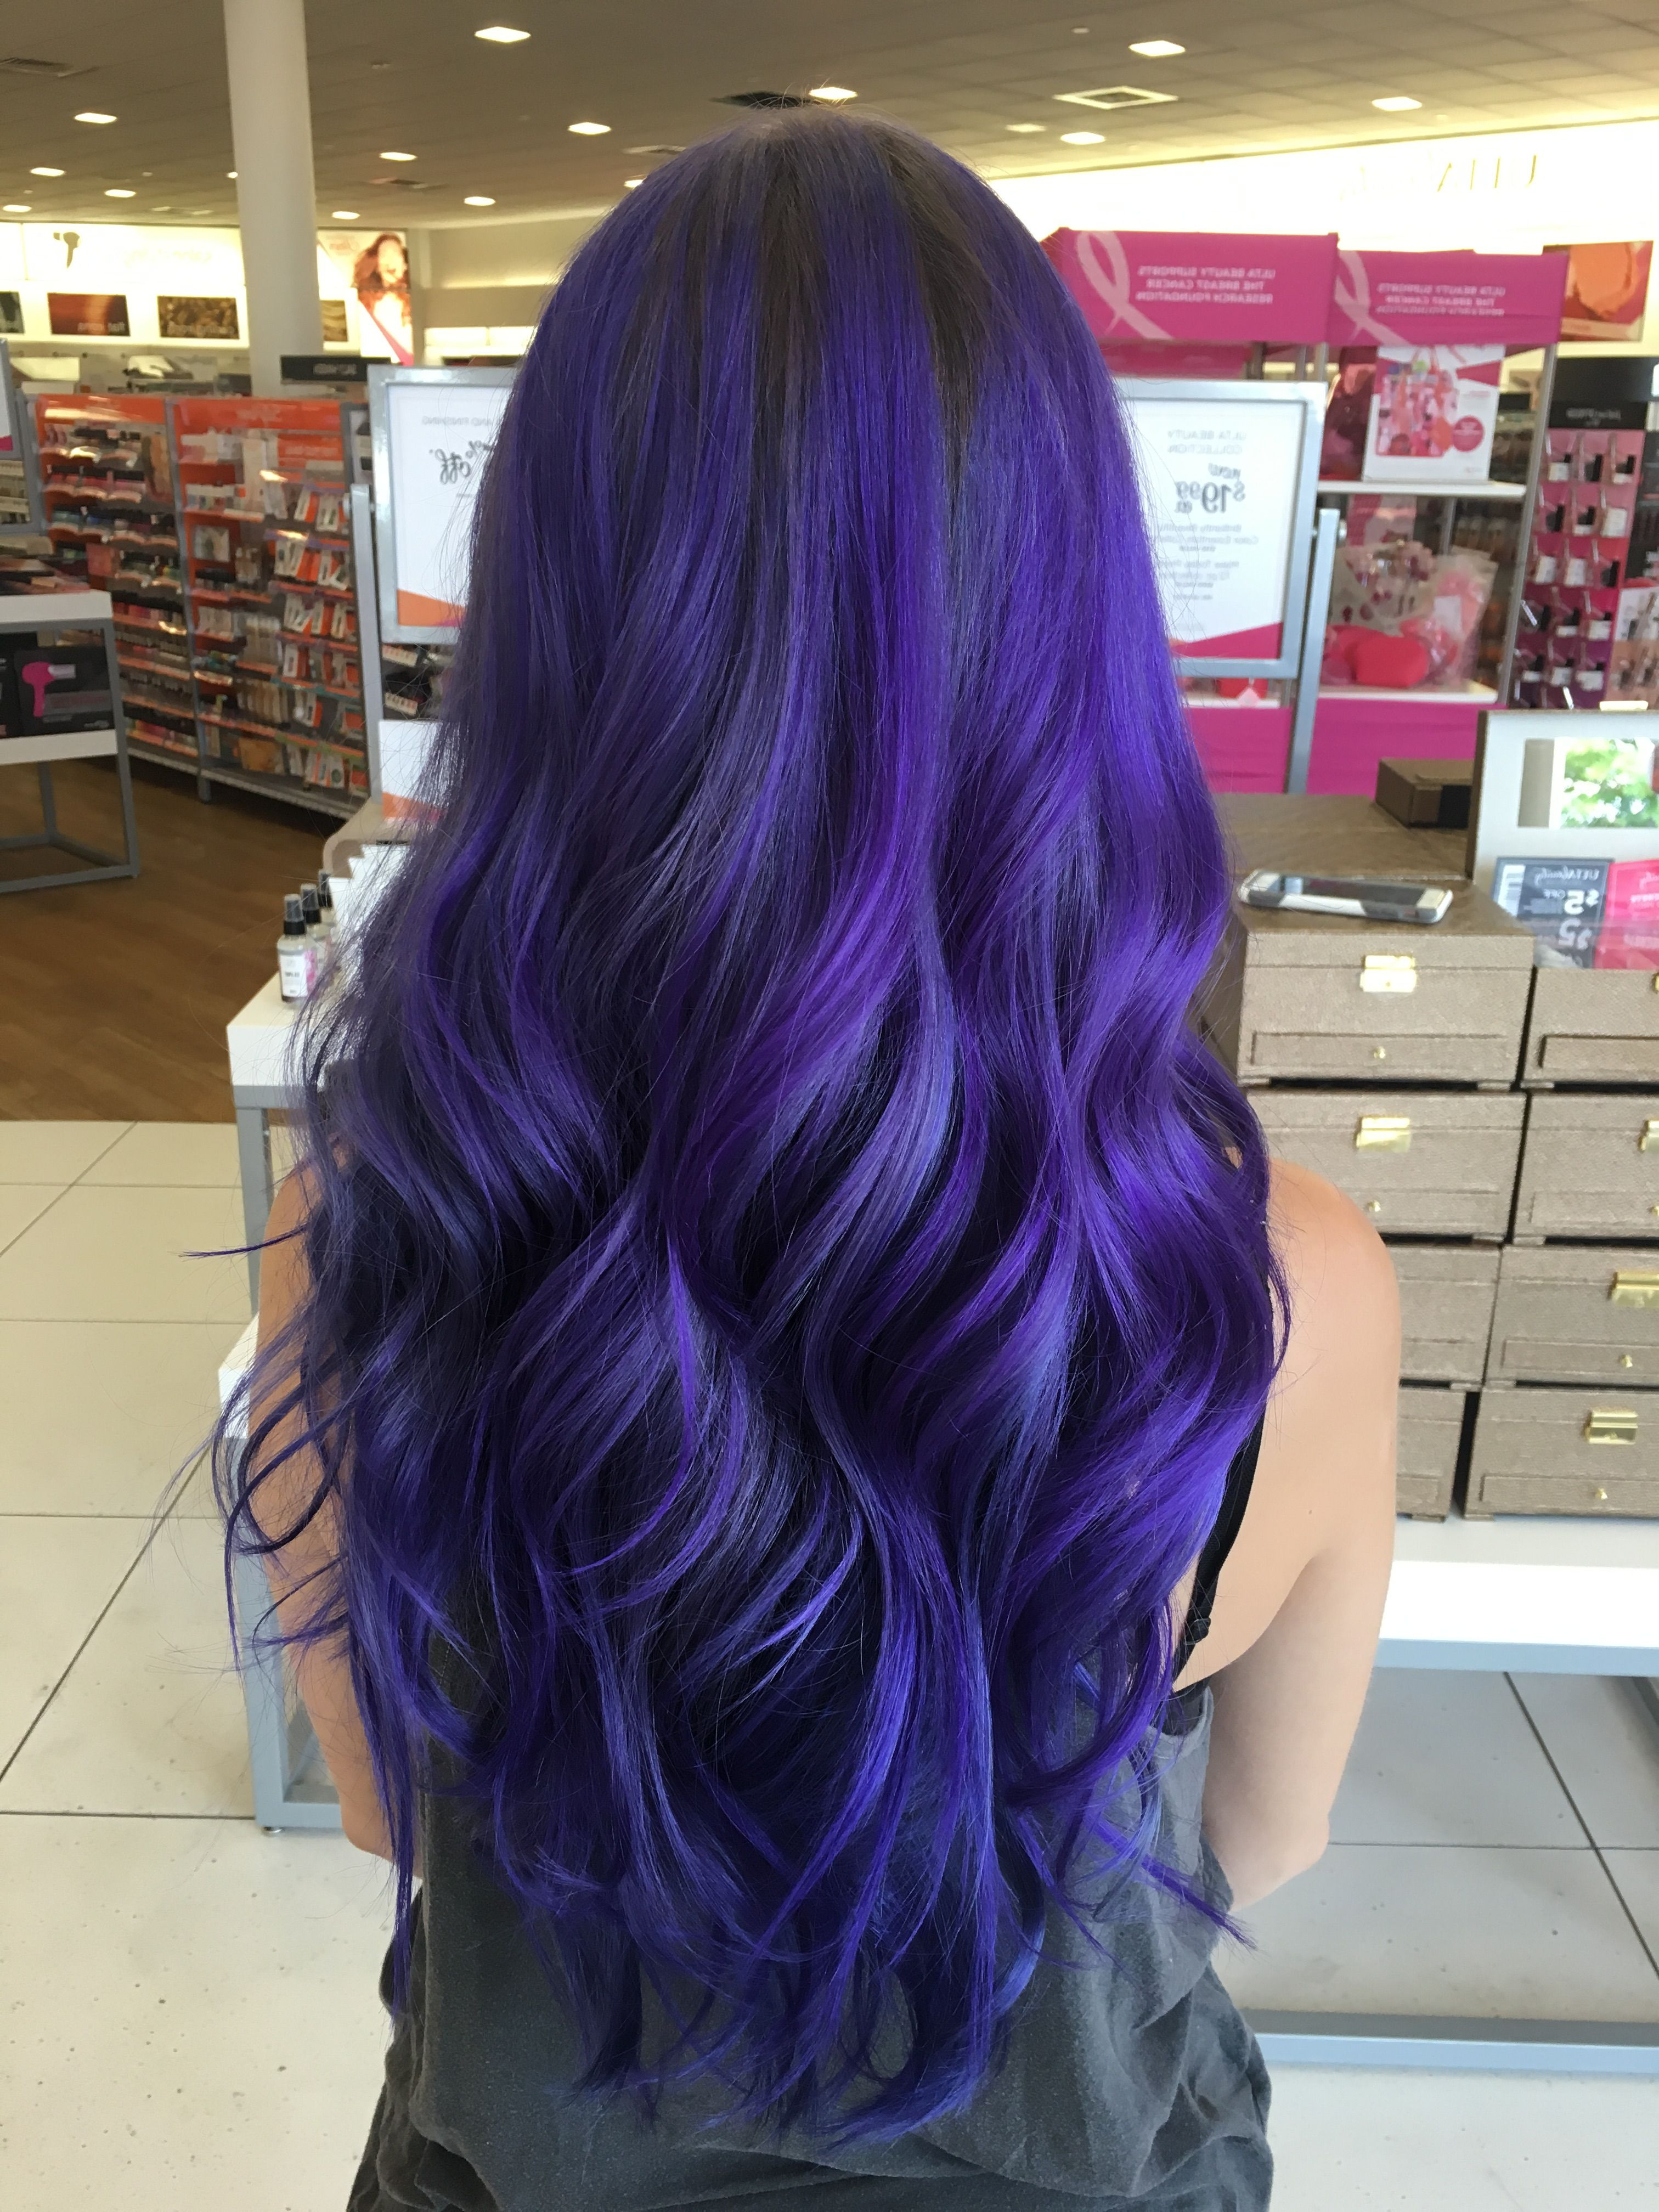 Hairstyles : Blue Ombre Hair Bob Ravishing Galaxy Hair Too For Most Recently Released Ravishing Smoky Purple Ombre Hairstyles (View 18 of 20)